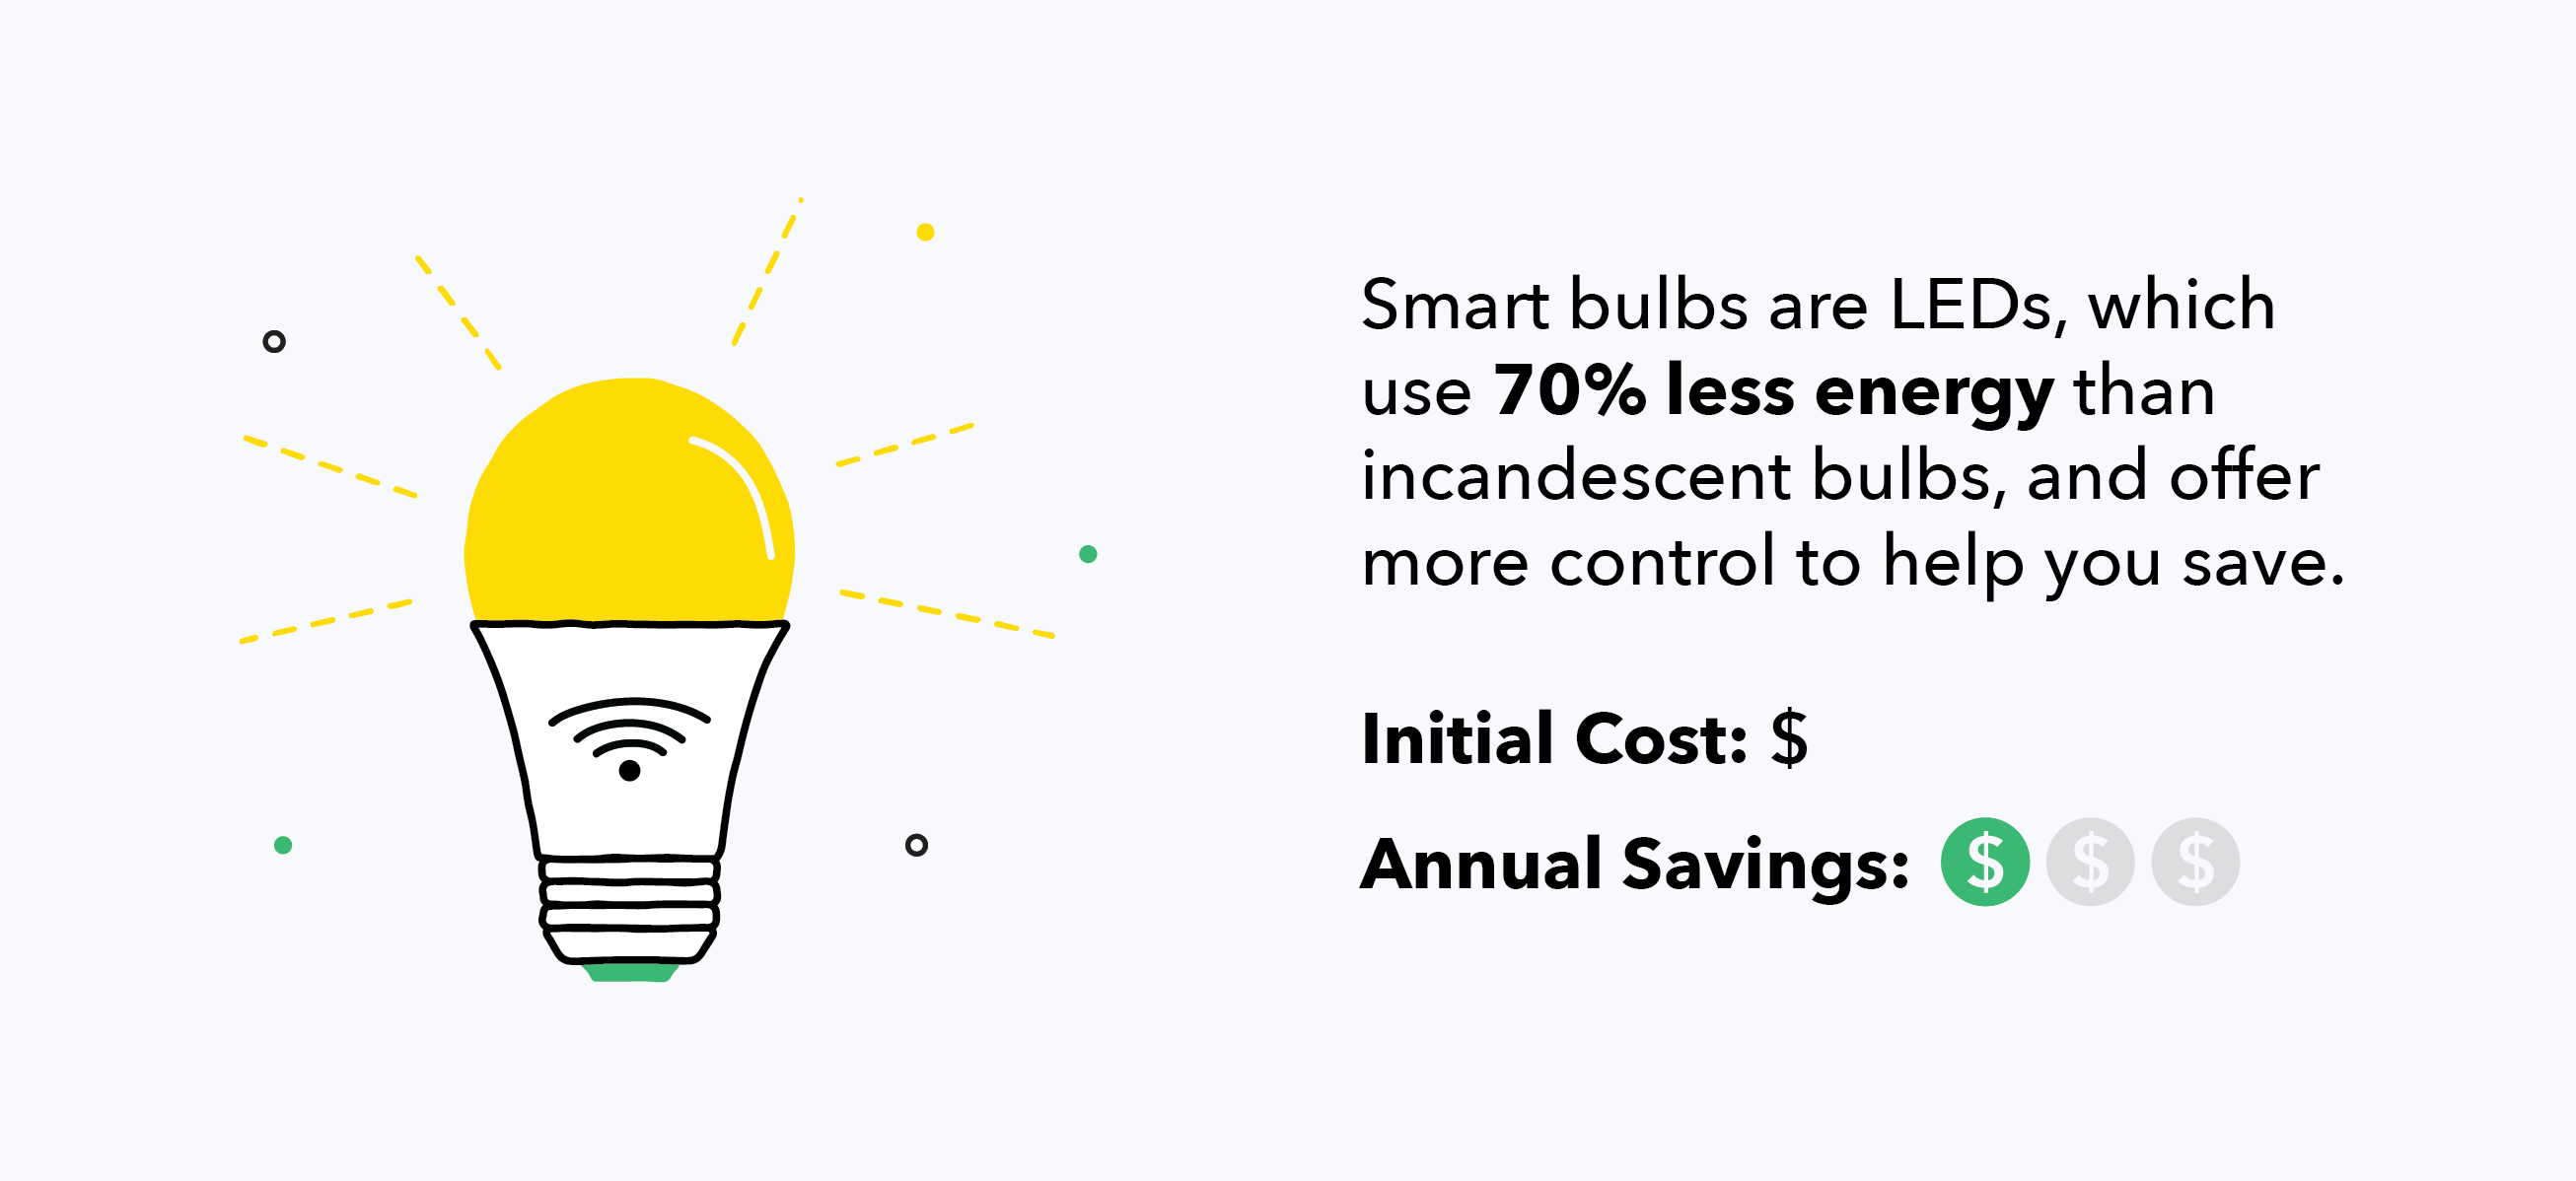 LED bulbs use 70% less energy than incandescent